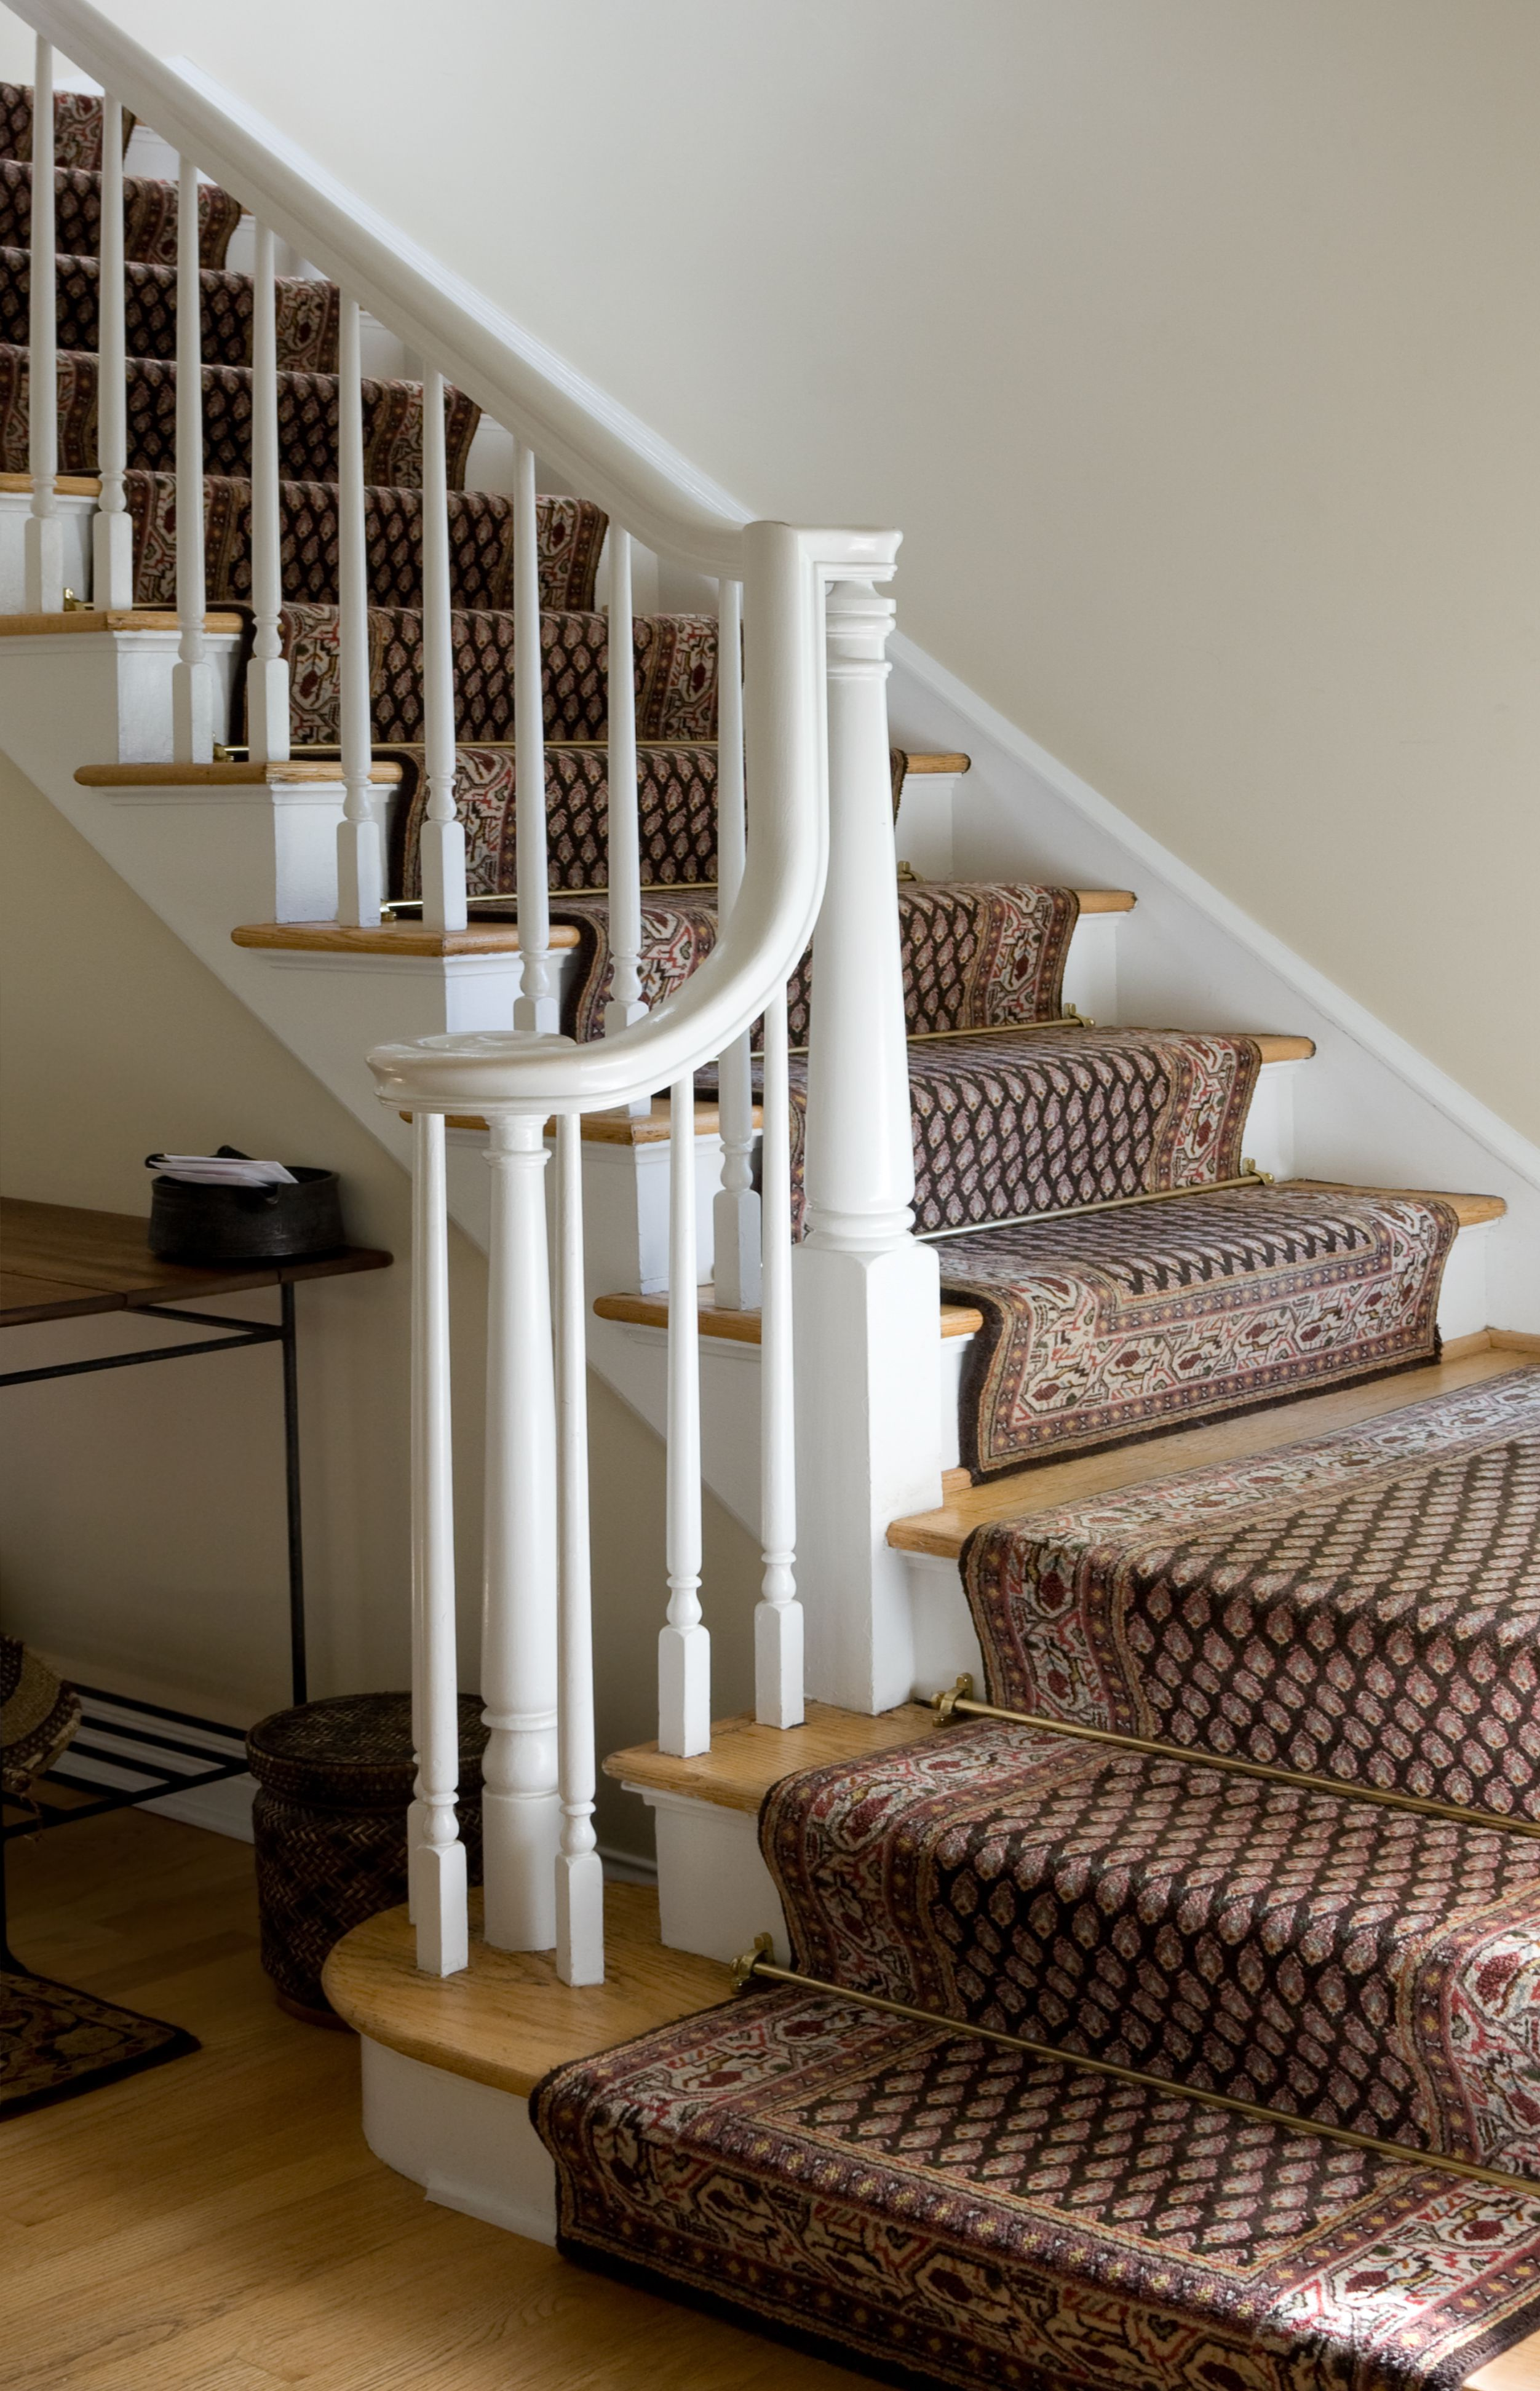 Best carpet for stairs and landing - Size Pattern Style Choosing A Carpet Runner For Stairs